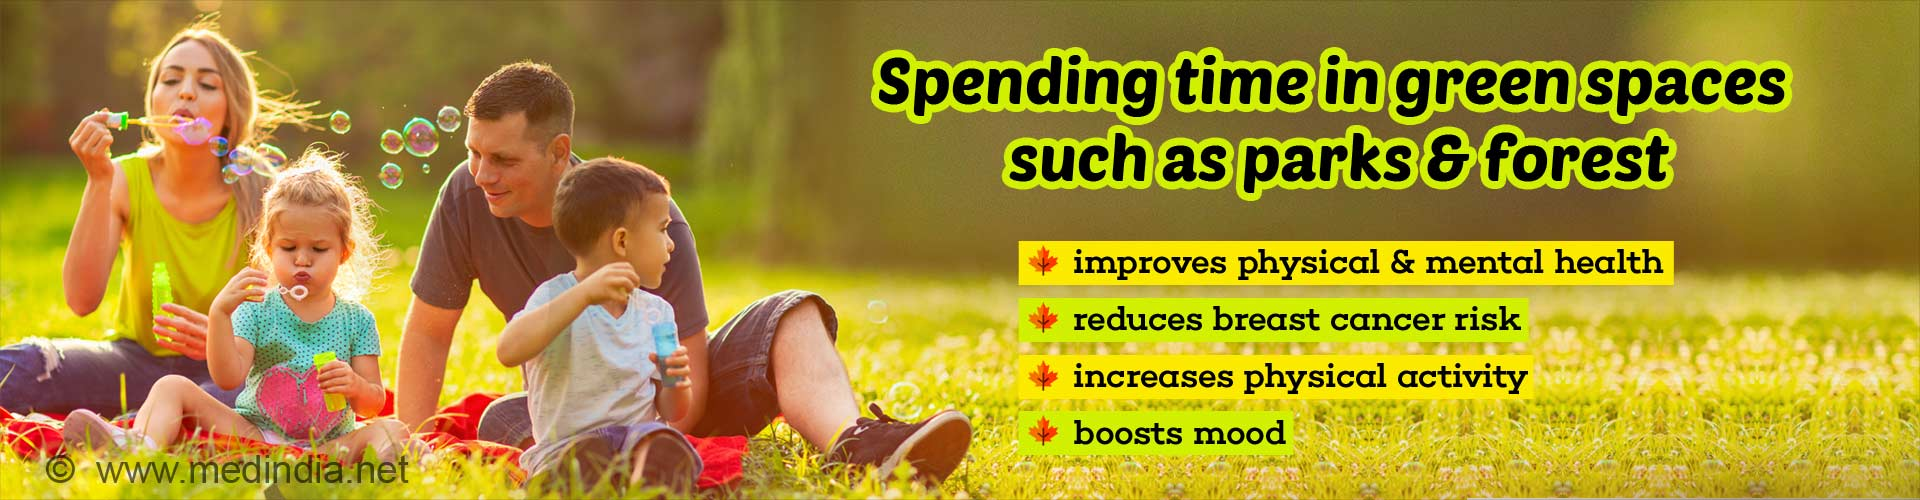 Green Spaces can Boost Your Health and Wellbeing